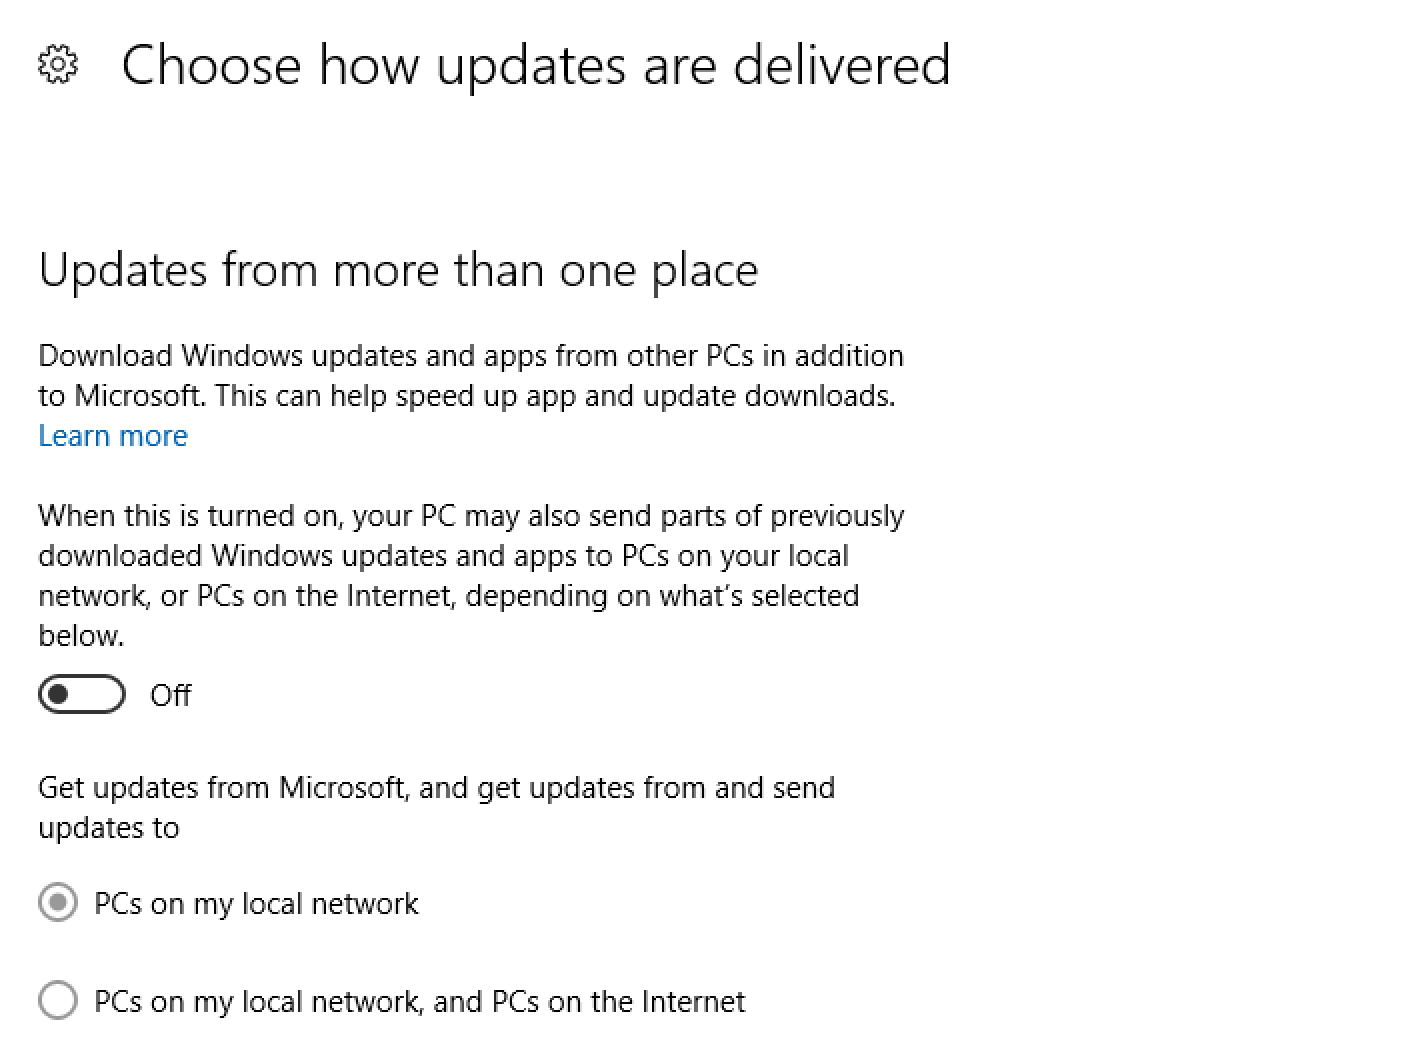 Stop windows 10 interrupting you for updates ask dave taylor how updates are delivered win10 baditri Choice Image